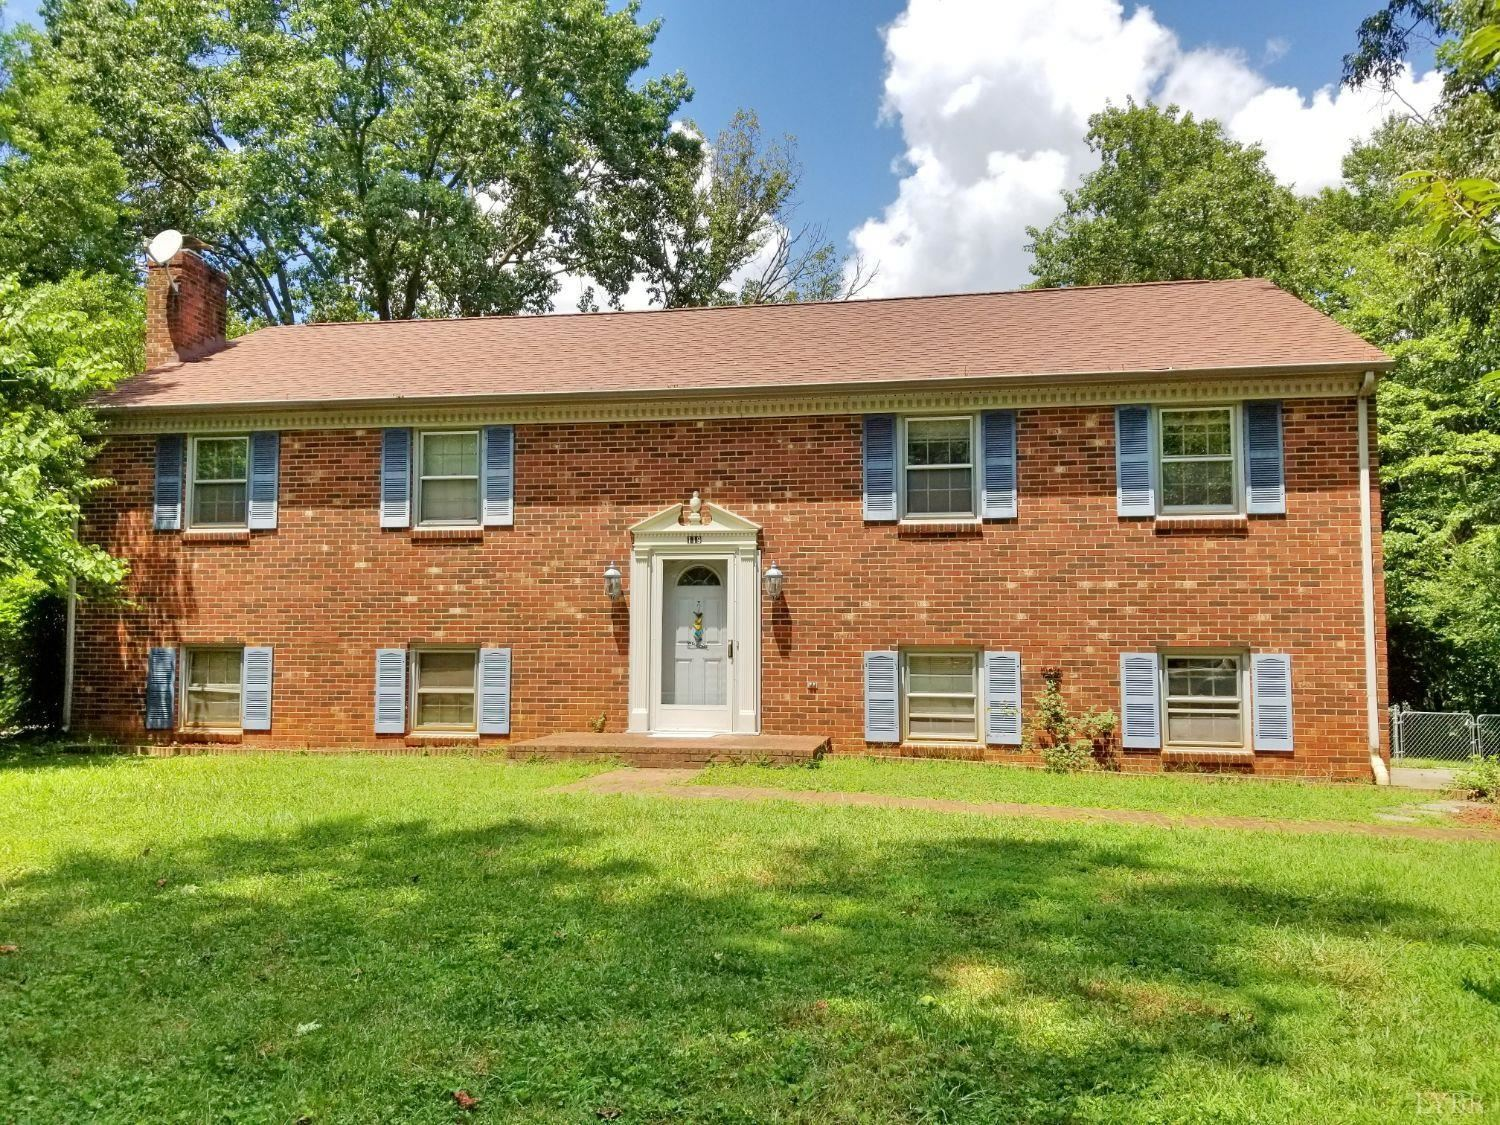 119 Bedford Springs Rd, Lynchburg, VA 24502 - MLS#: 320115